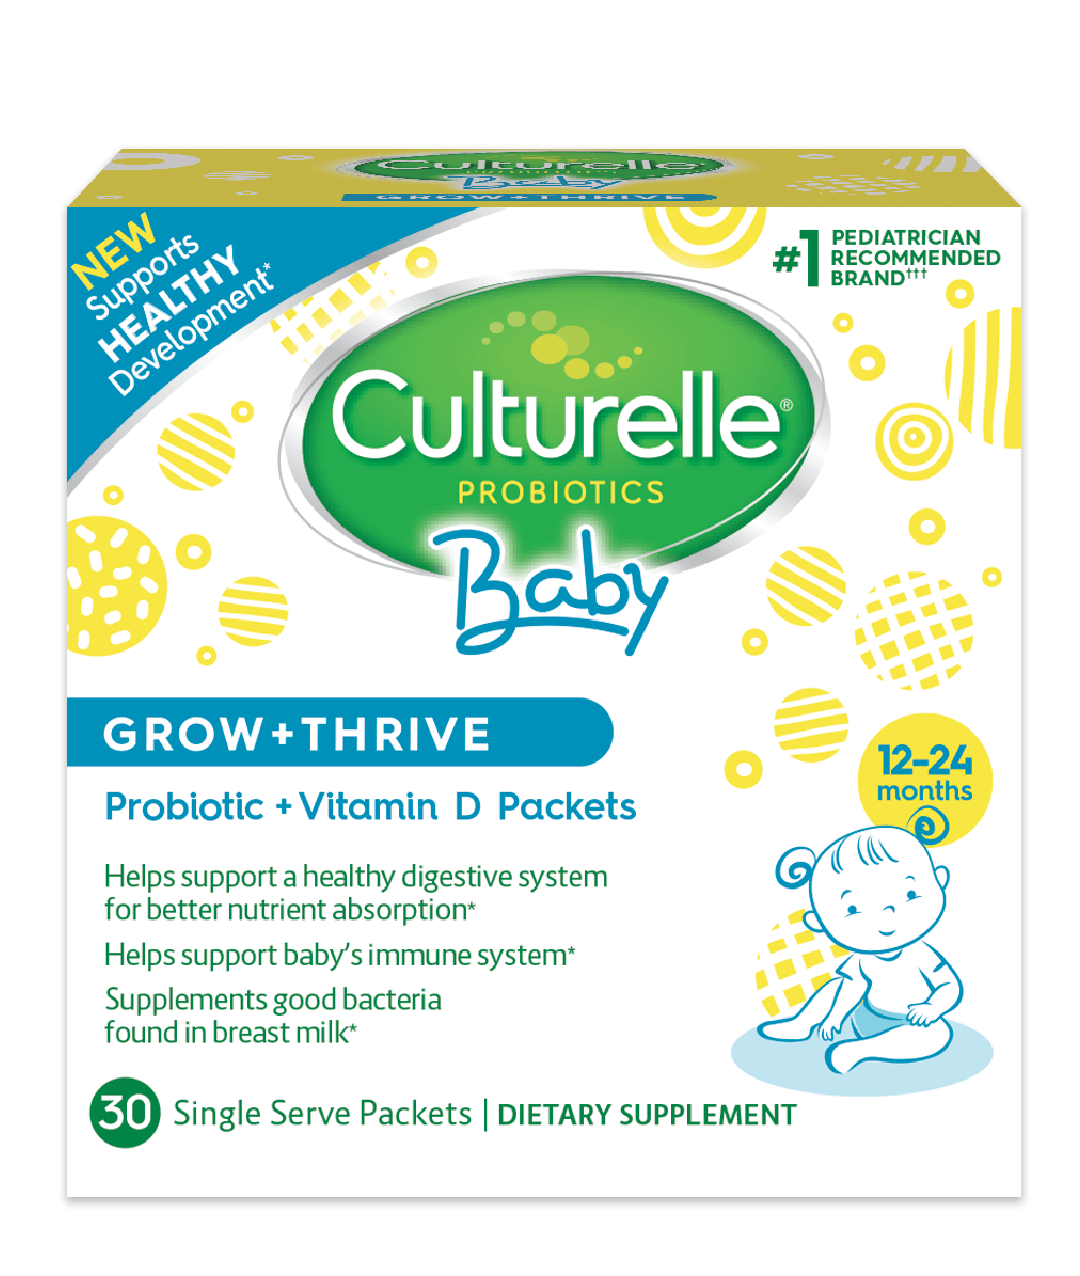 Try Baby Grow + Thrive, a daily probiotic supplement that delivers recommended amount of Vitamin D (the American Academy of Pediatrics recommends infants supplement with IU (10mcg) of vitamin D), to help support baby's healthy development.* Culturelle formulates probiotic supplements specifically for babies months, babies and toddlers months, and kids 1 year and armychief.mls: